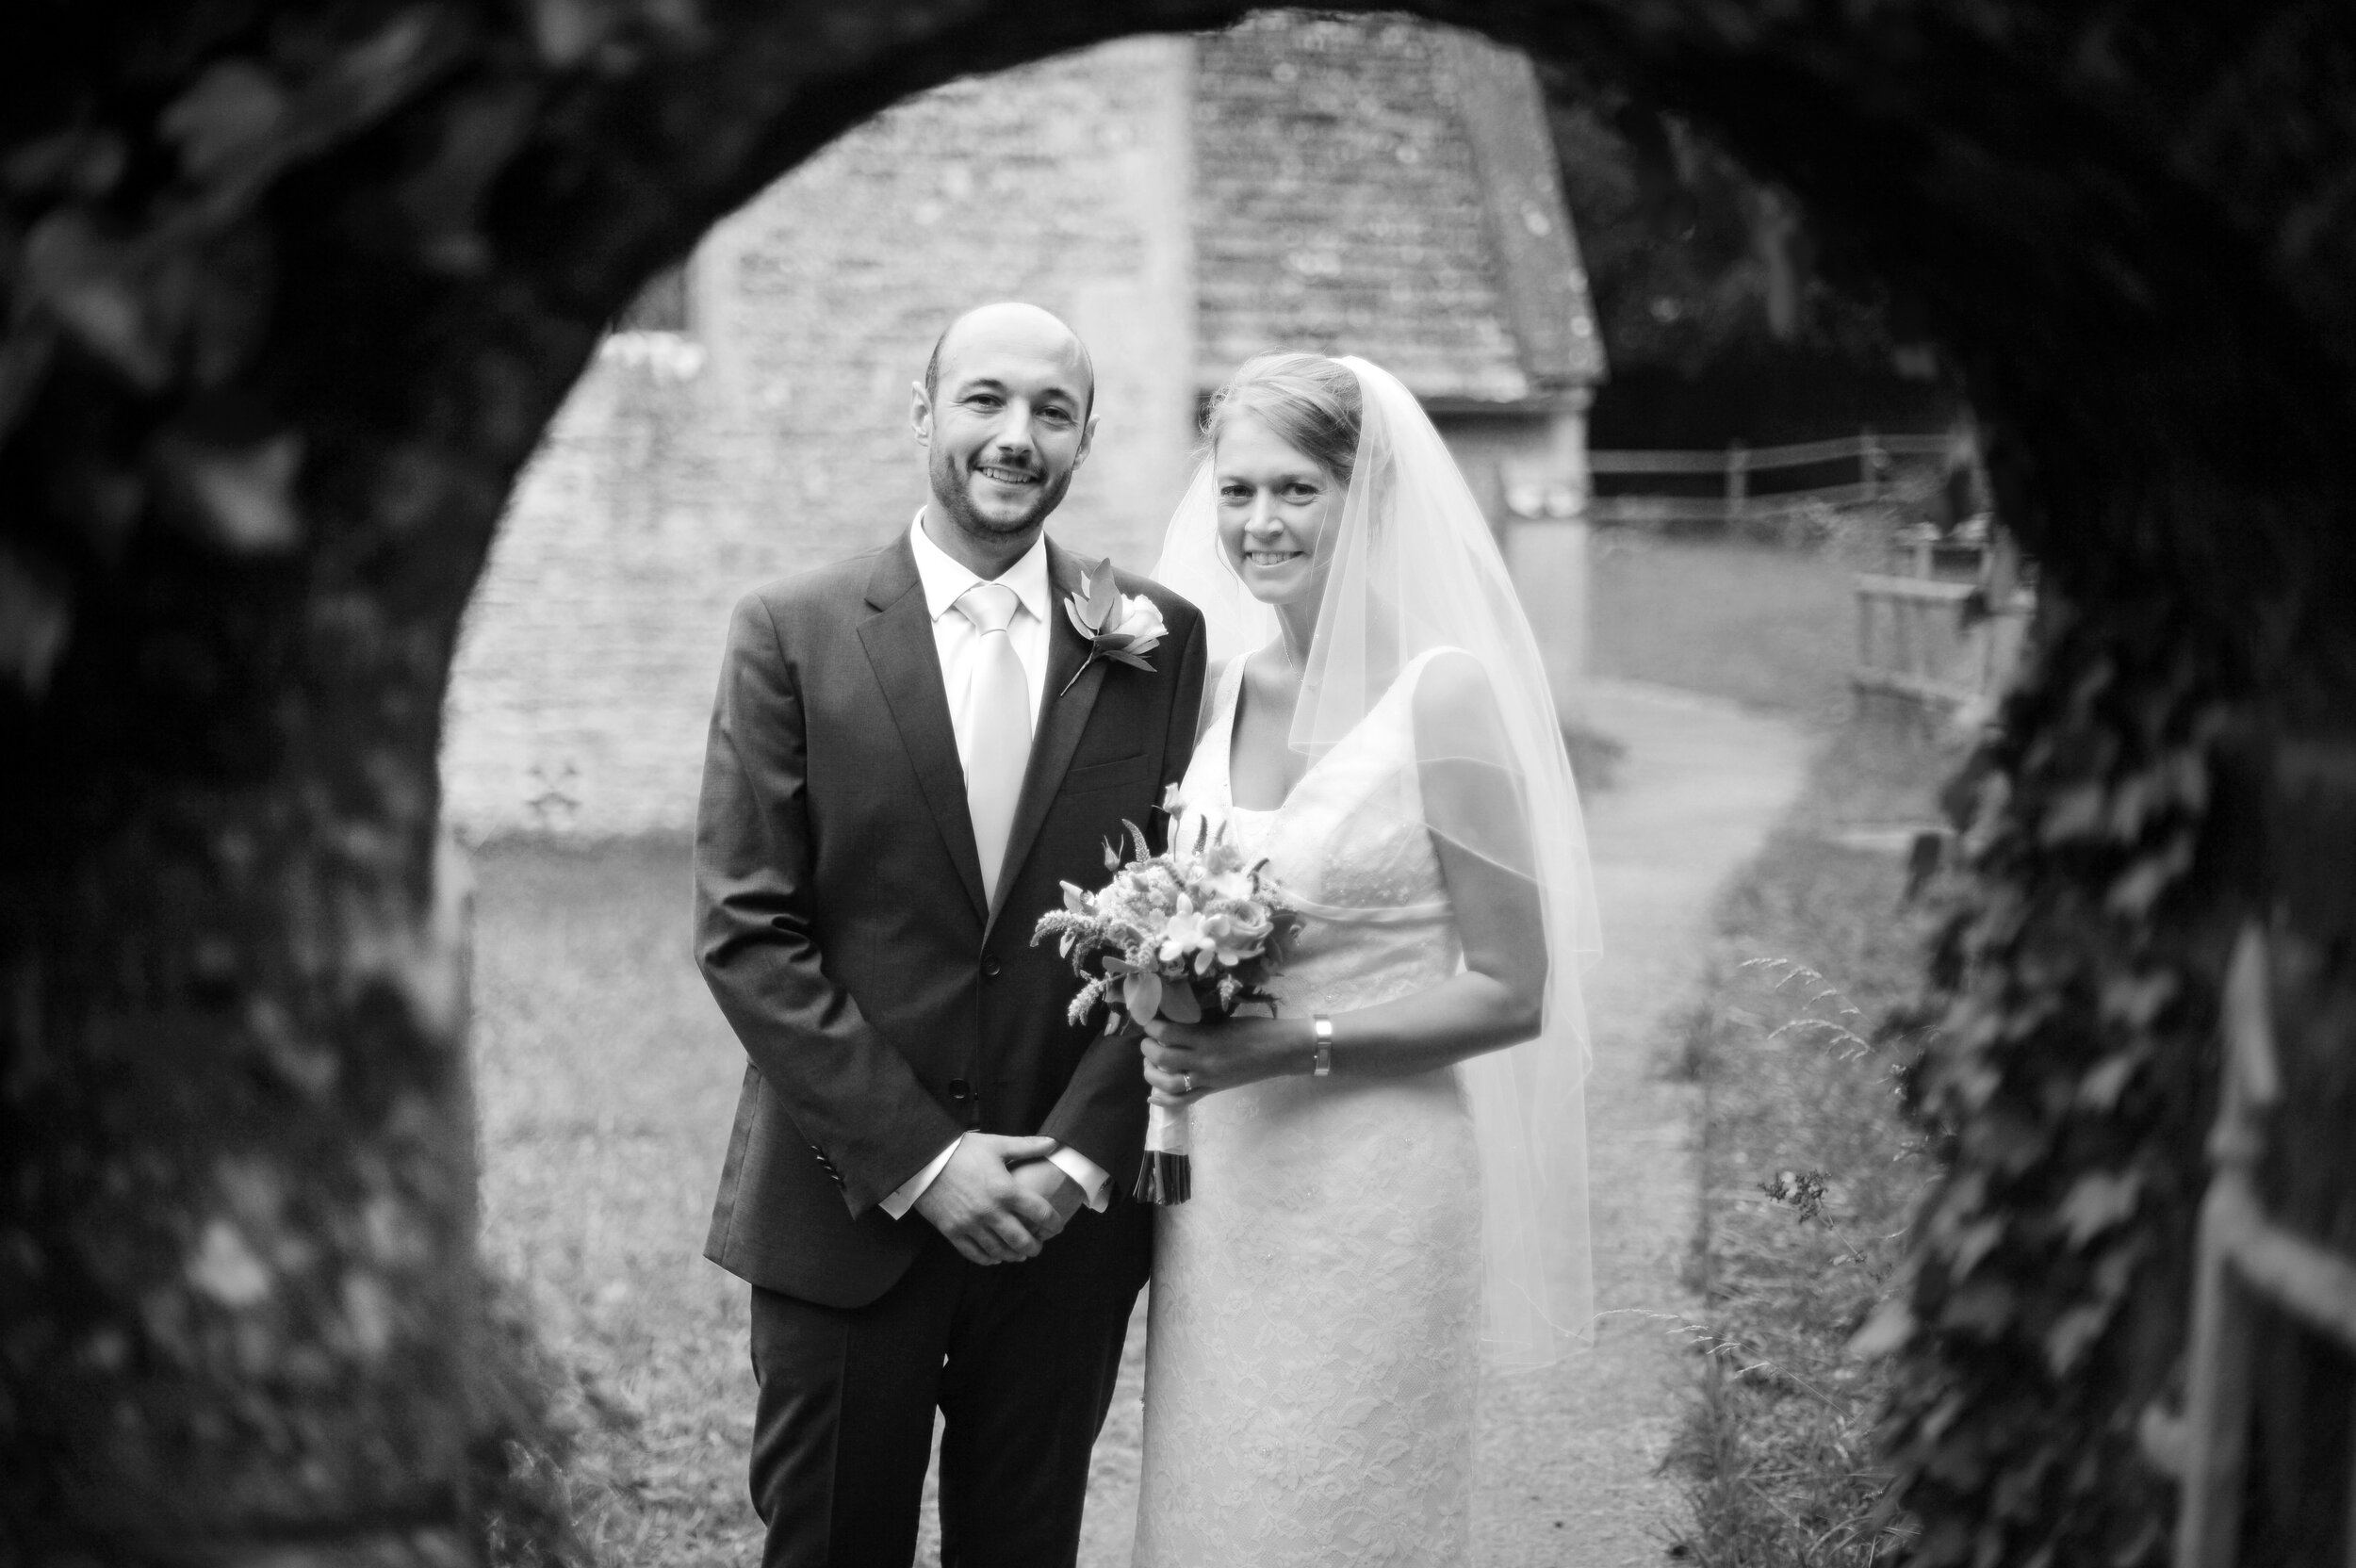 Special January offer £47.50 per person - What better time to get married than when a new year starts, bringing with it the promise of new starts and the start of a wonderful marriage.